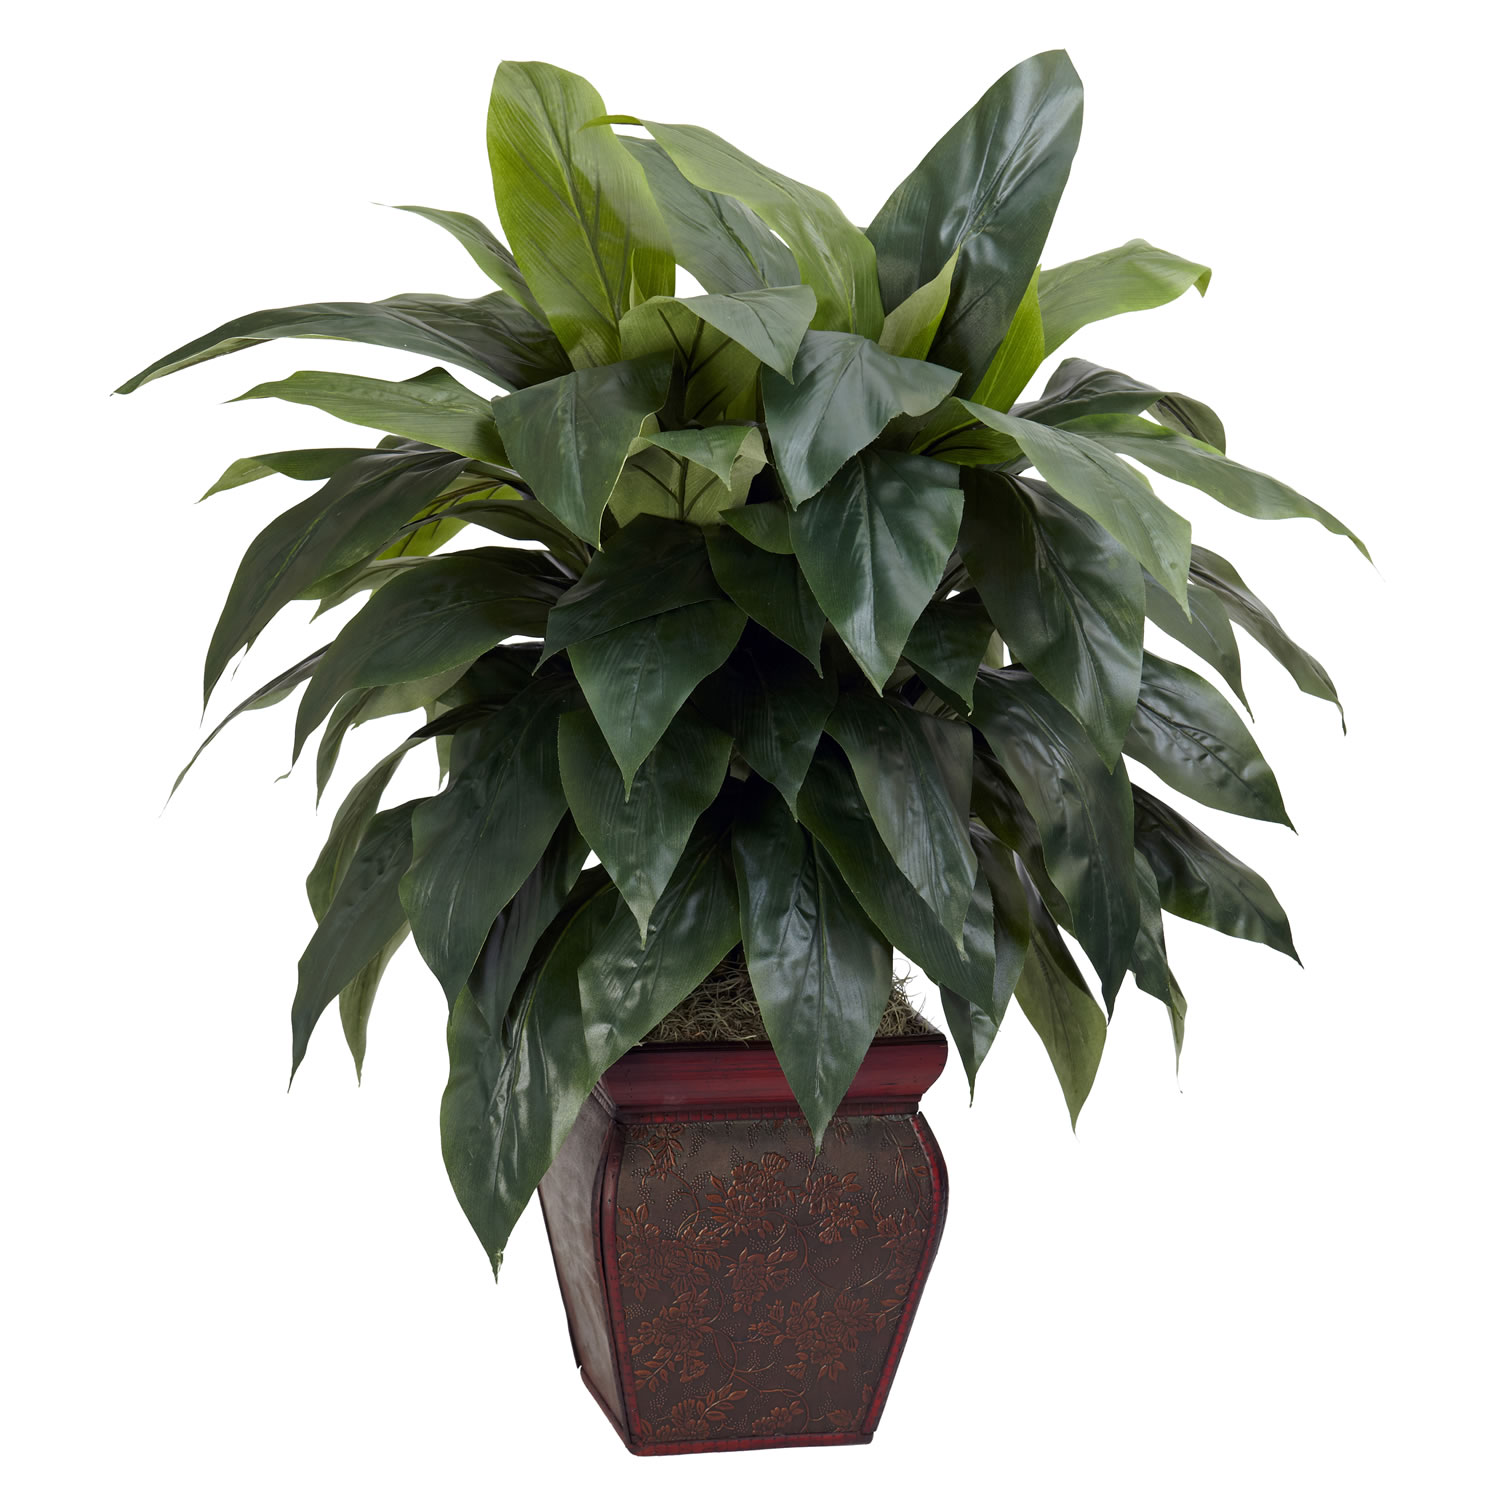 35 inch cordyline in decorative vase 6688 for Decorative plants for garden